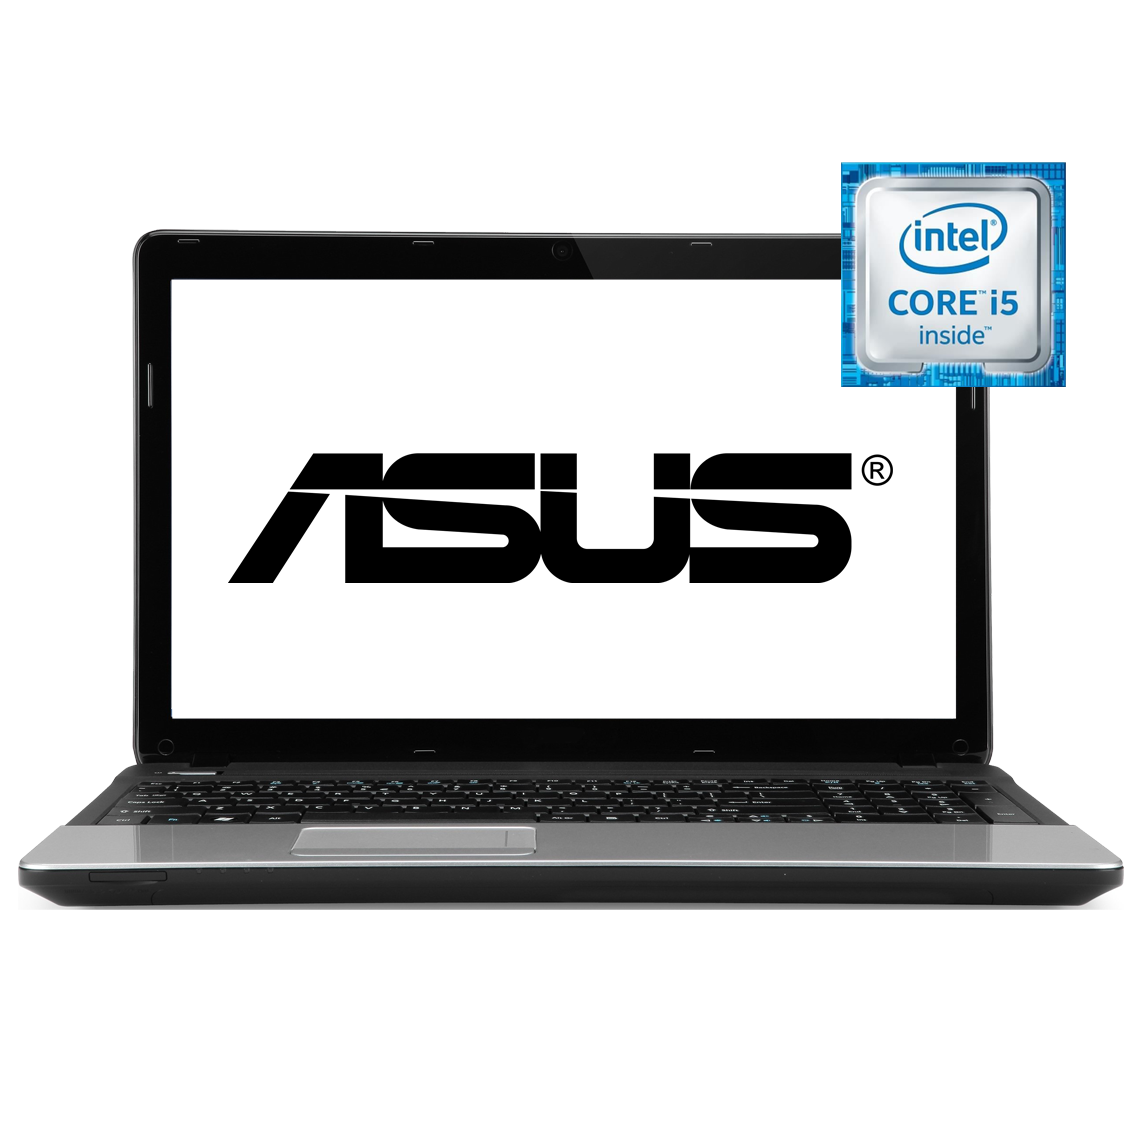 ASUS - 15 inch Core i5 2nd Gen